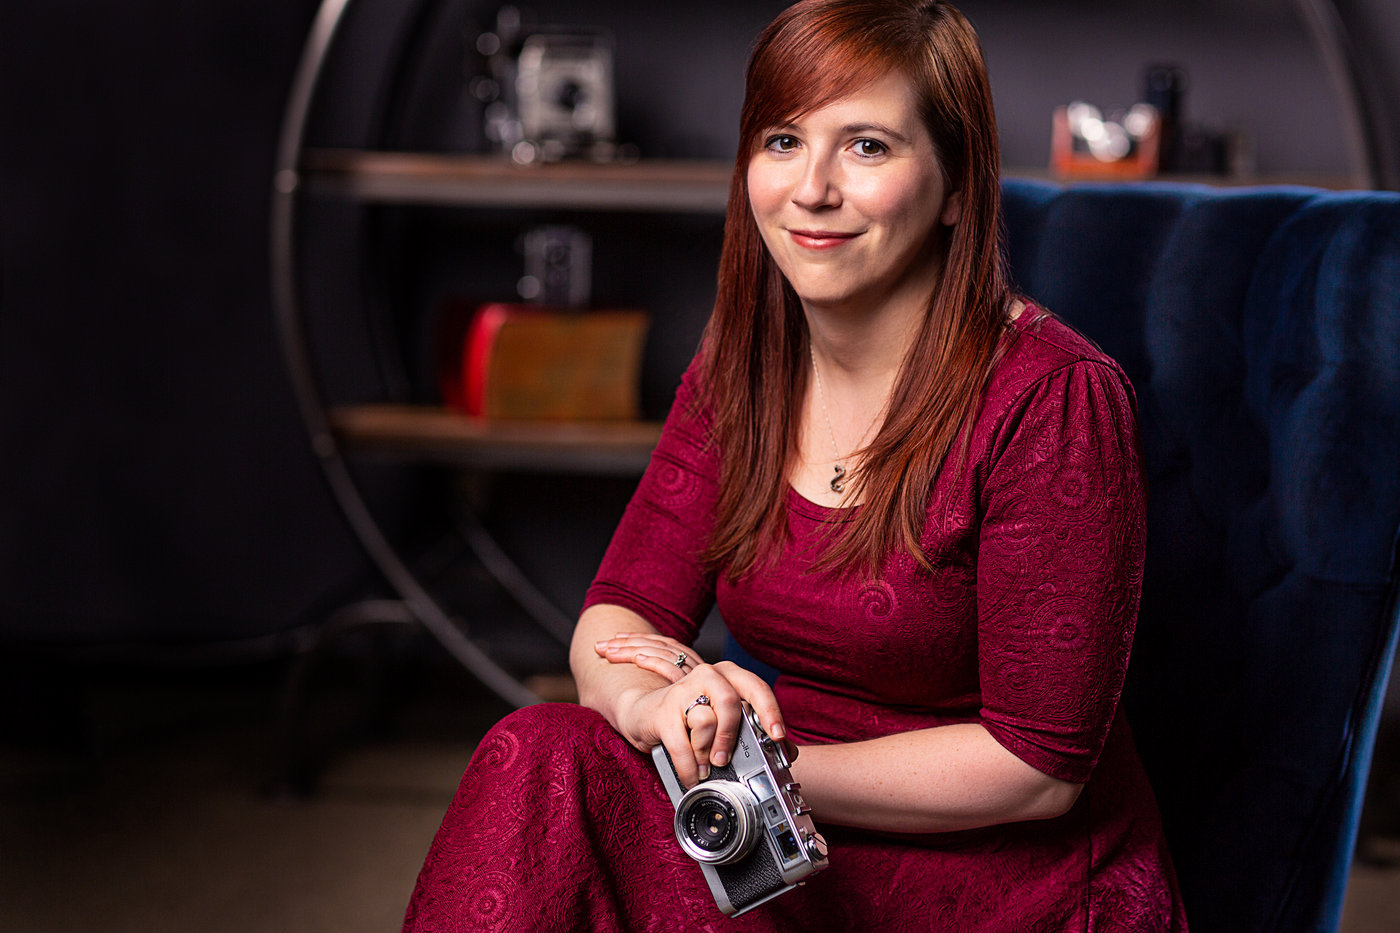 a woman poses with a vintage camera while wearing a dark red dress in front of a shelf of vintage cameras to demonstrate one of the tips for great branding photos